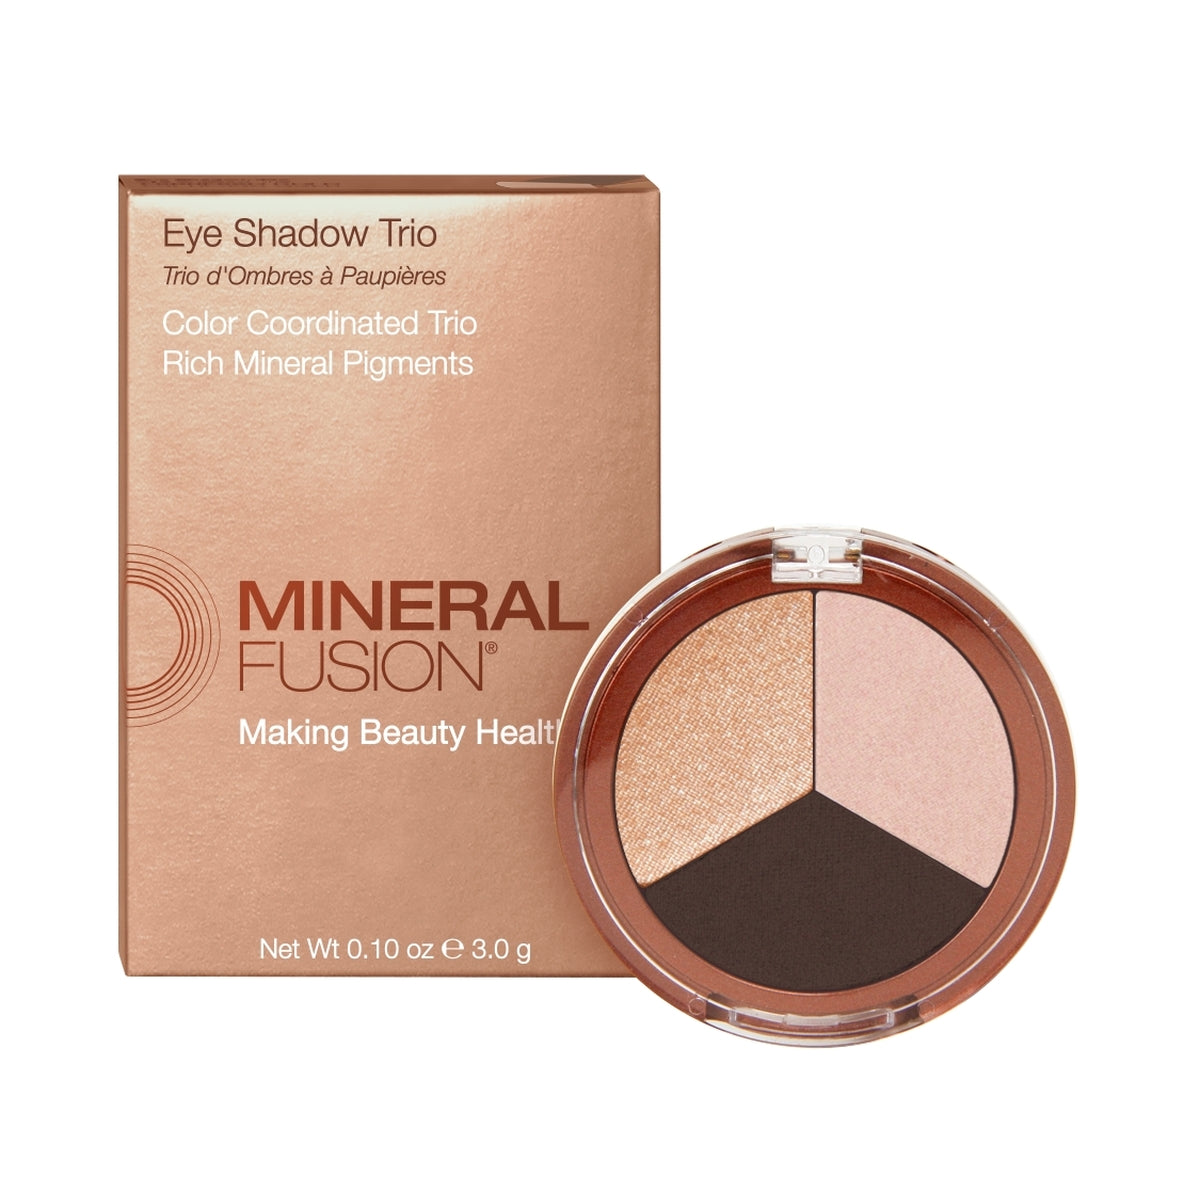 Mineral Fusion Eye Shadow Trio in Espresso Gold